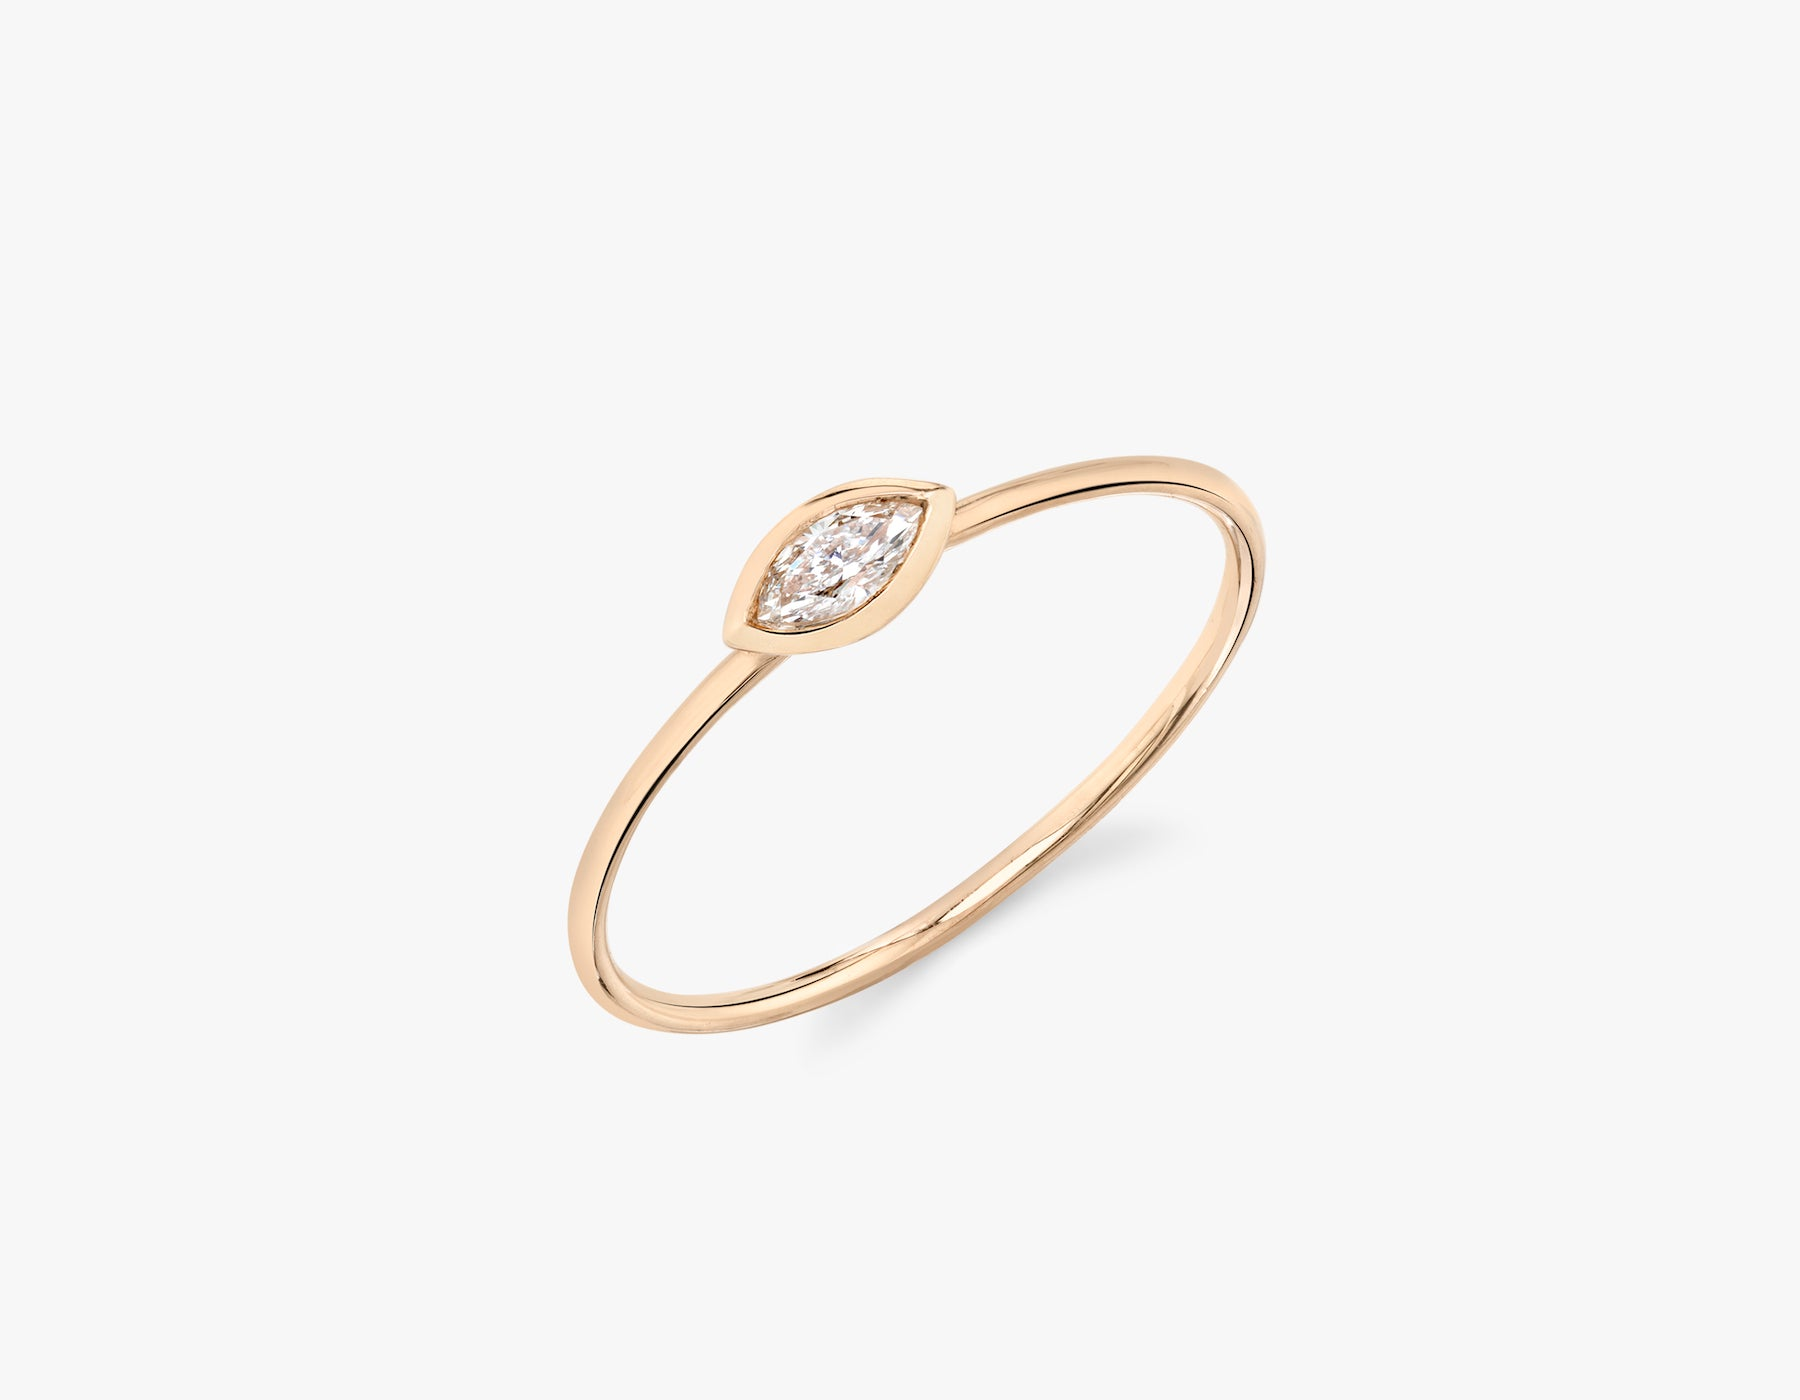 Vrai simple minimalist Marquise Diamond Bezel Ring, 14K Rose Gold